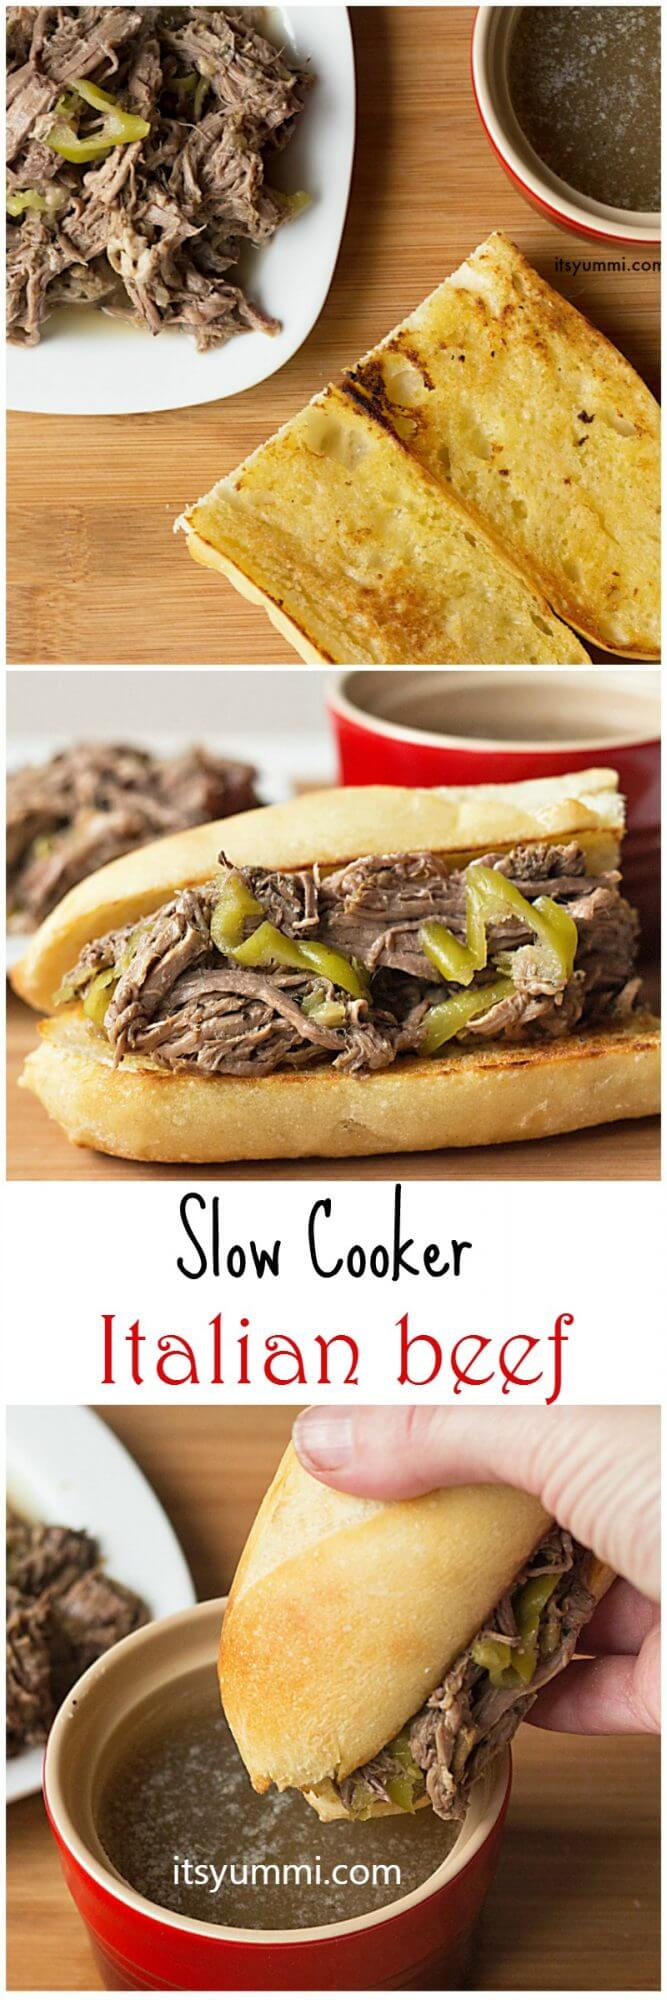 Perfect for game day! Slow Cooker Italian Beef - Get the recipe from ItsYummi.com